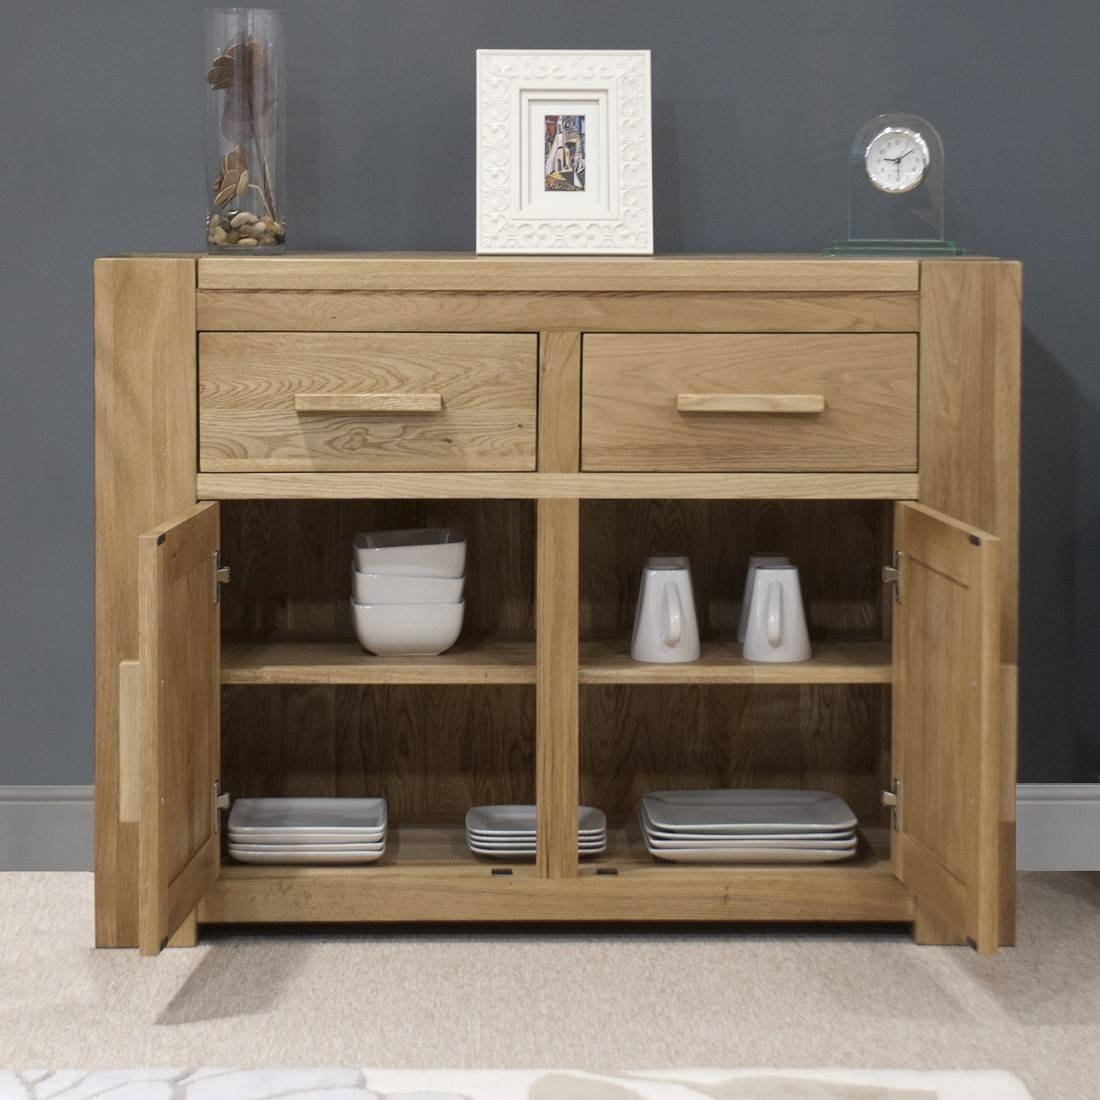 Trend Solid Oak Small 2 Door Sideboard | Oak Furniture Uk Throughout Most Popular 2 Door Sideboards (#14 of 15)